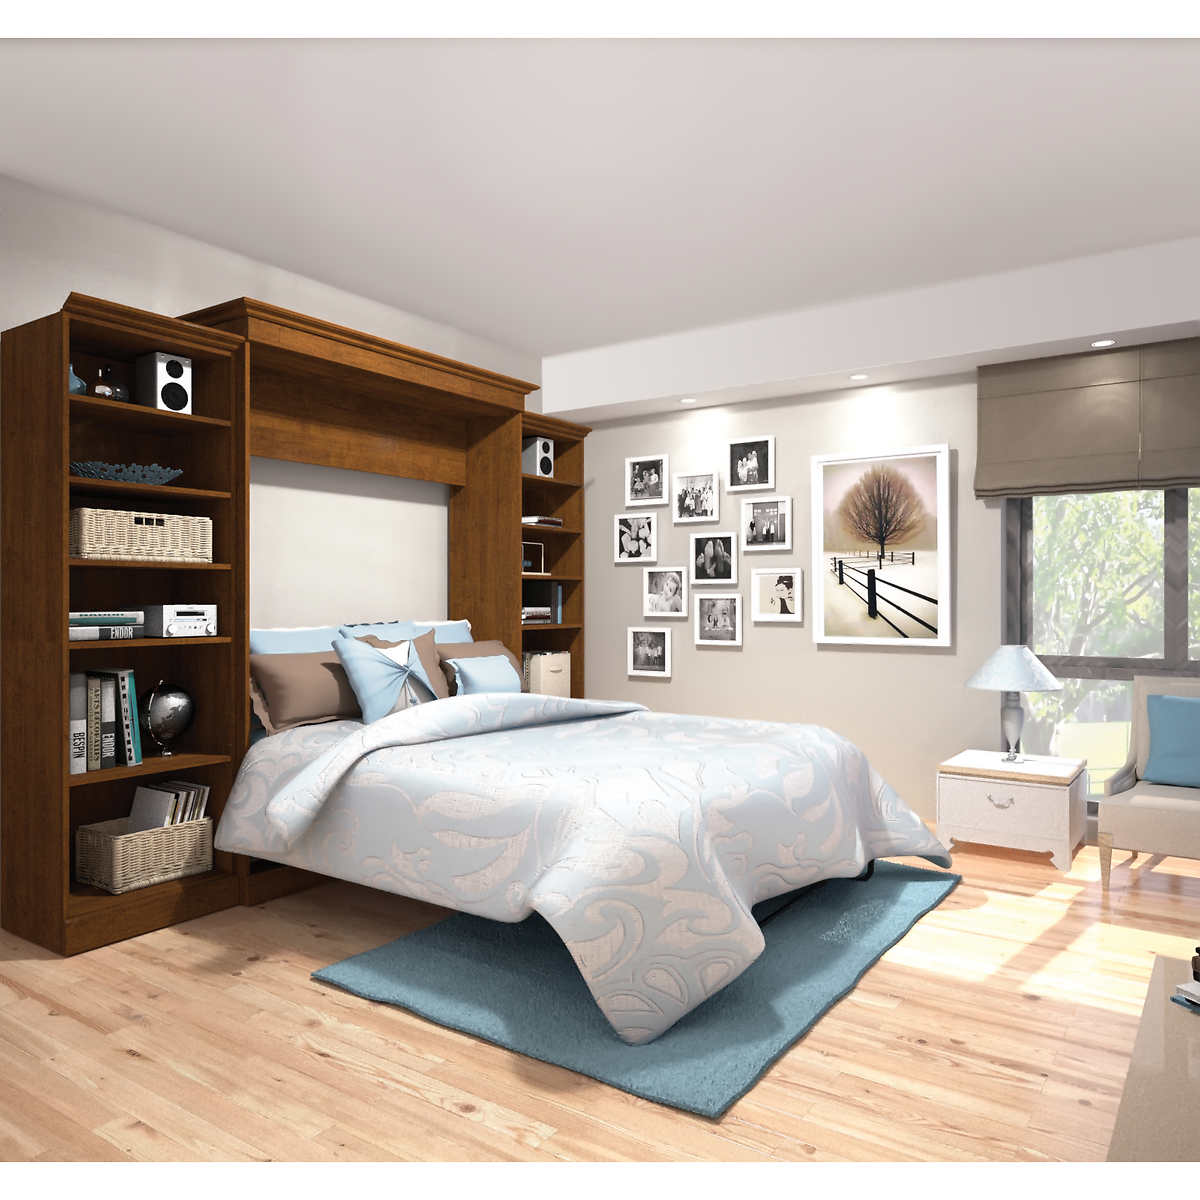 Wall queen bed image collections home wall decoration ideas bestar audrea queen wall bed with two 25 storage units in tuscany click to zoom amipublicfo amipublicfo Image collections